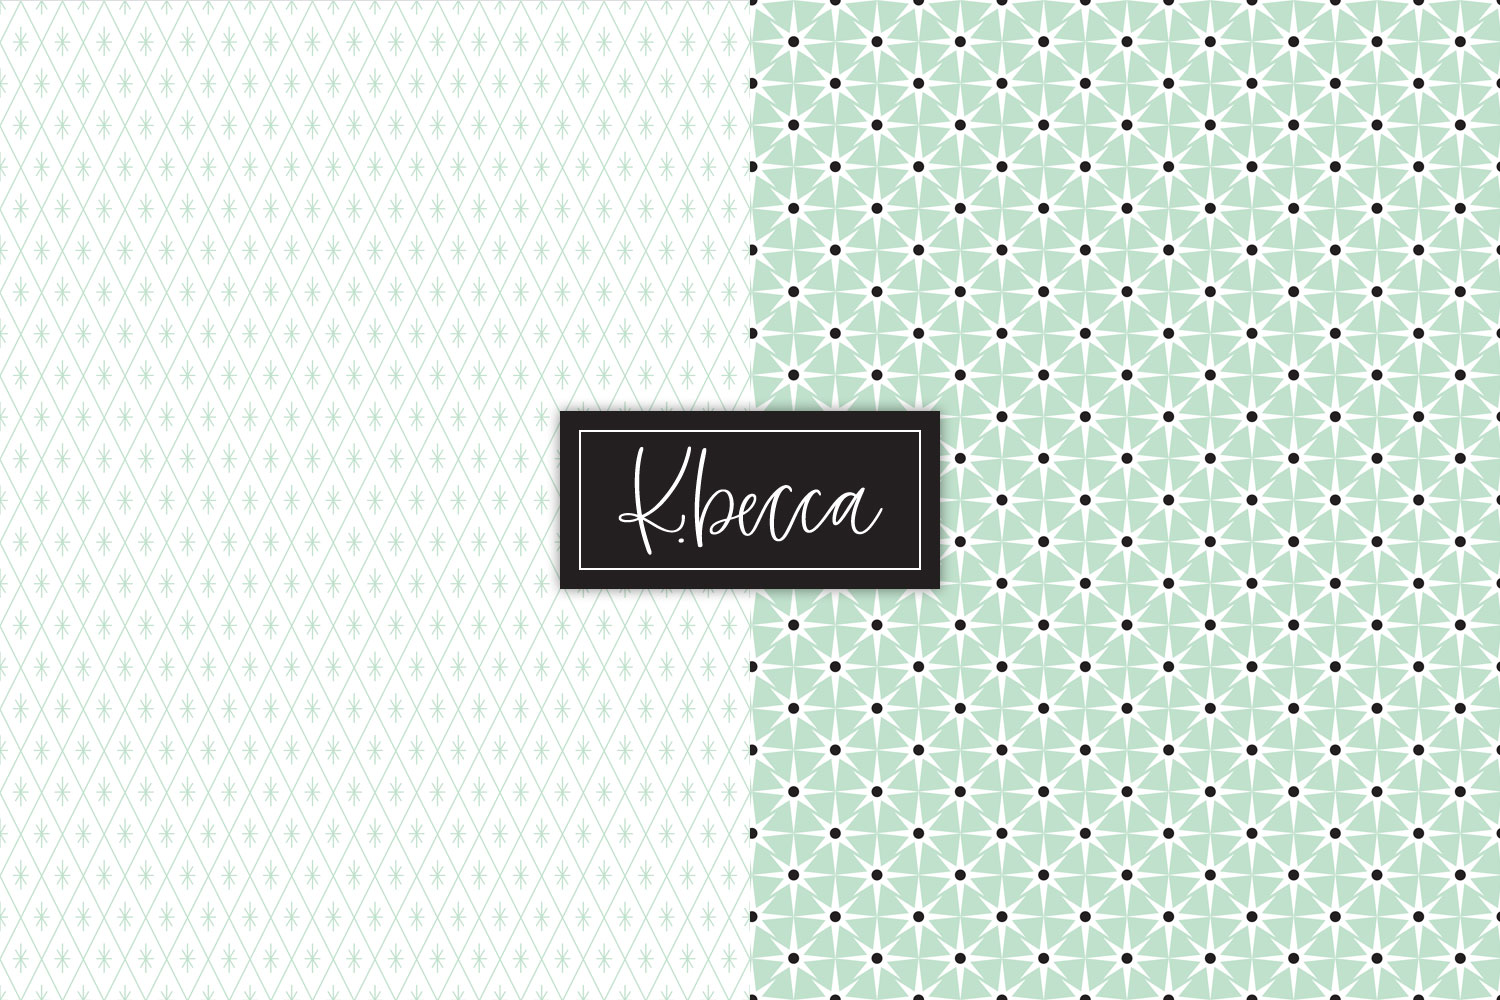 Retro 1950s Background Patterns Seamless example image 3